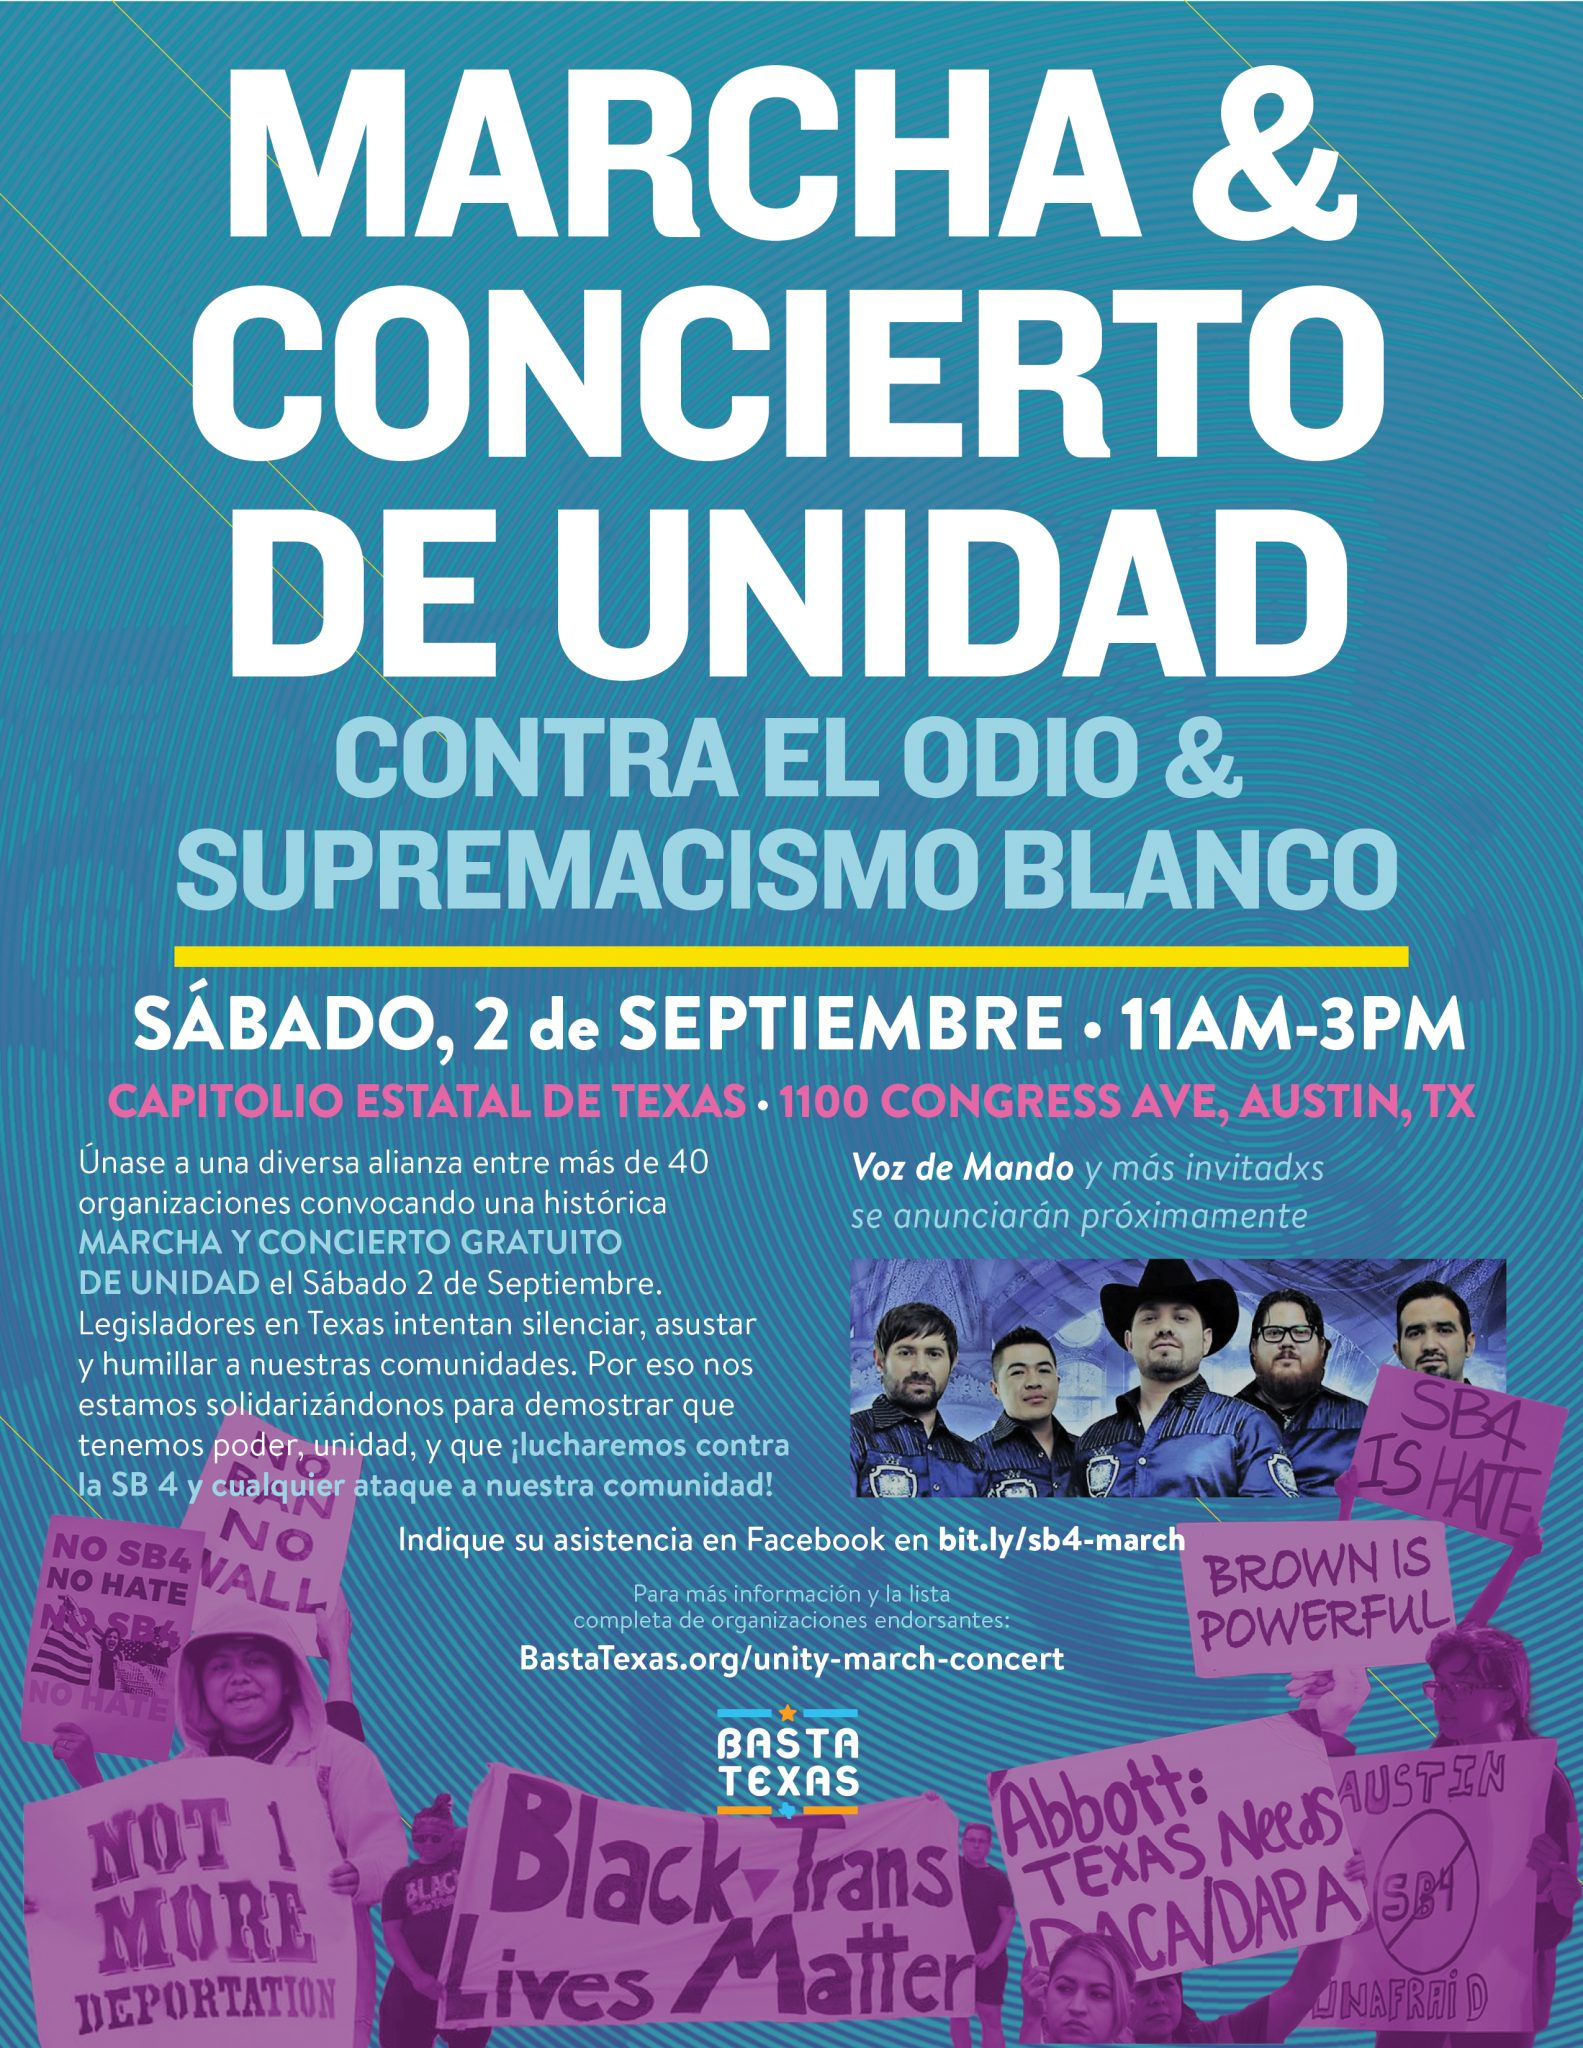 unity march concert small flyer basta texas